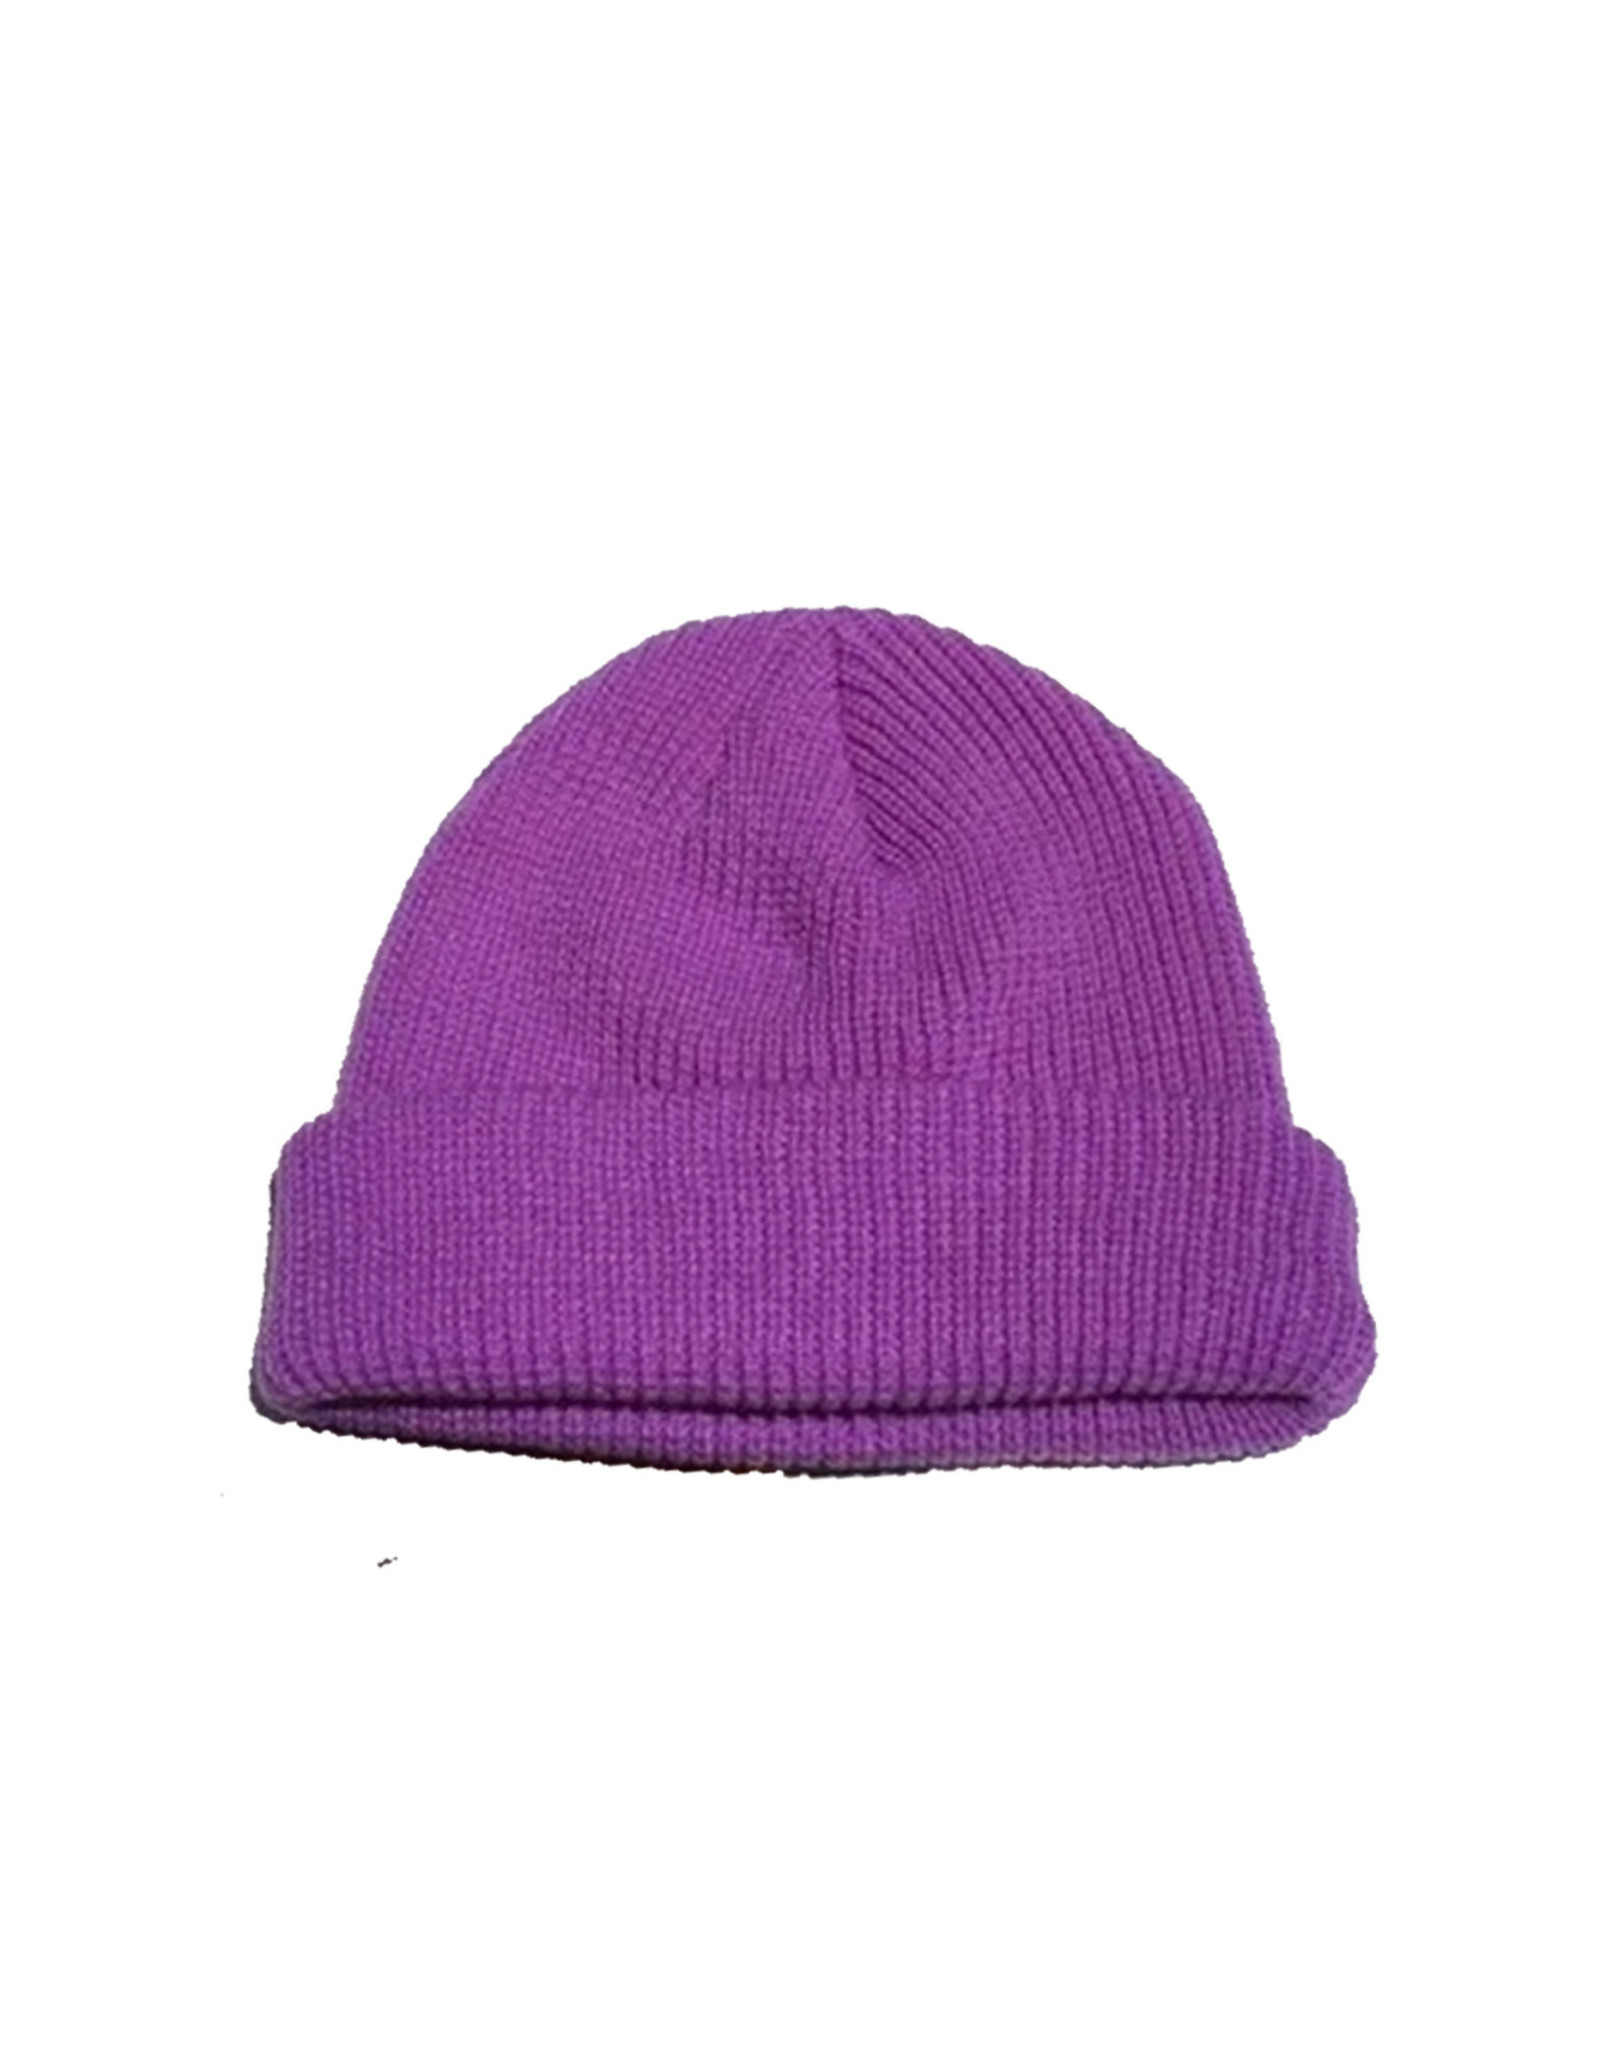 Jewel Toned Knit Hats (Kid/Tween)